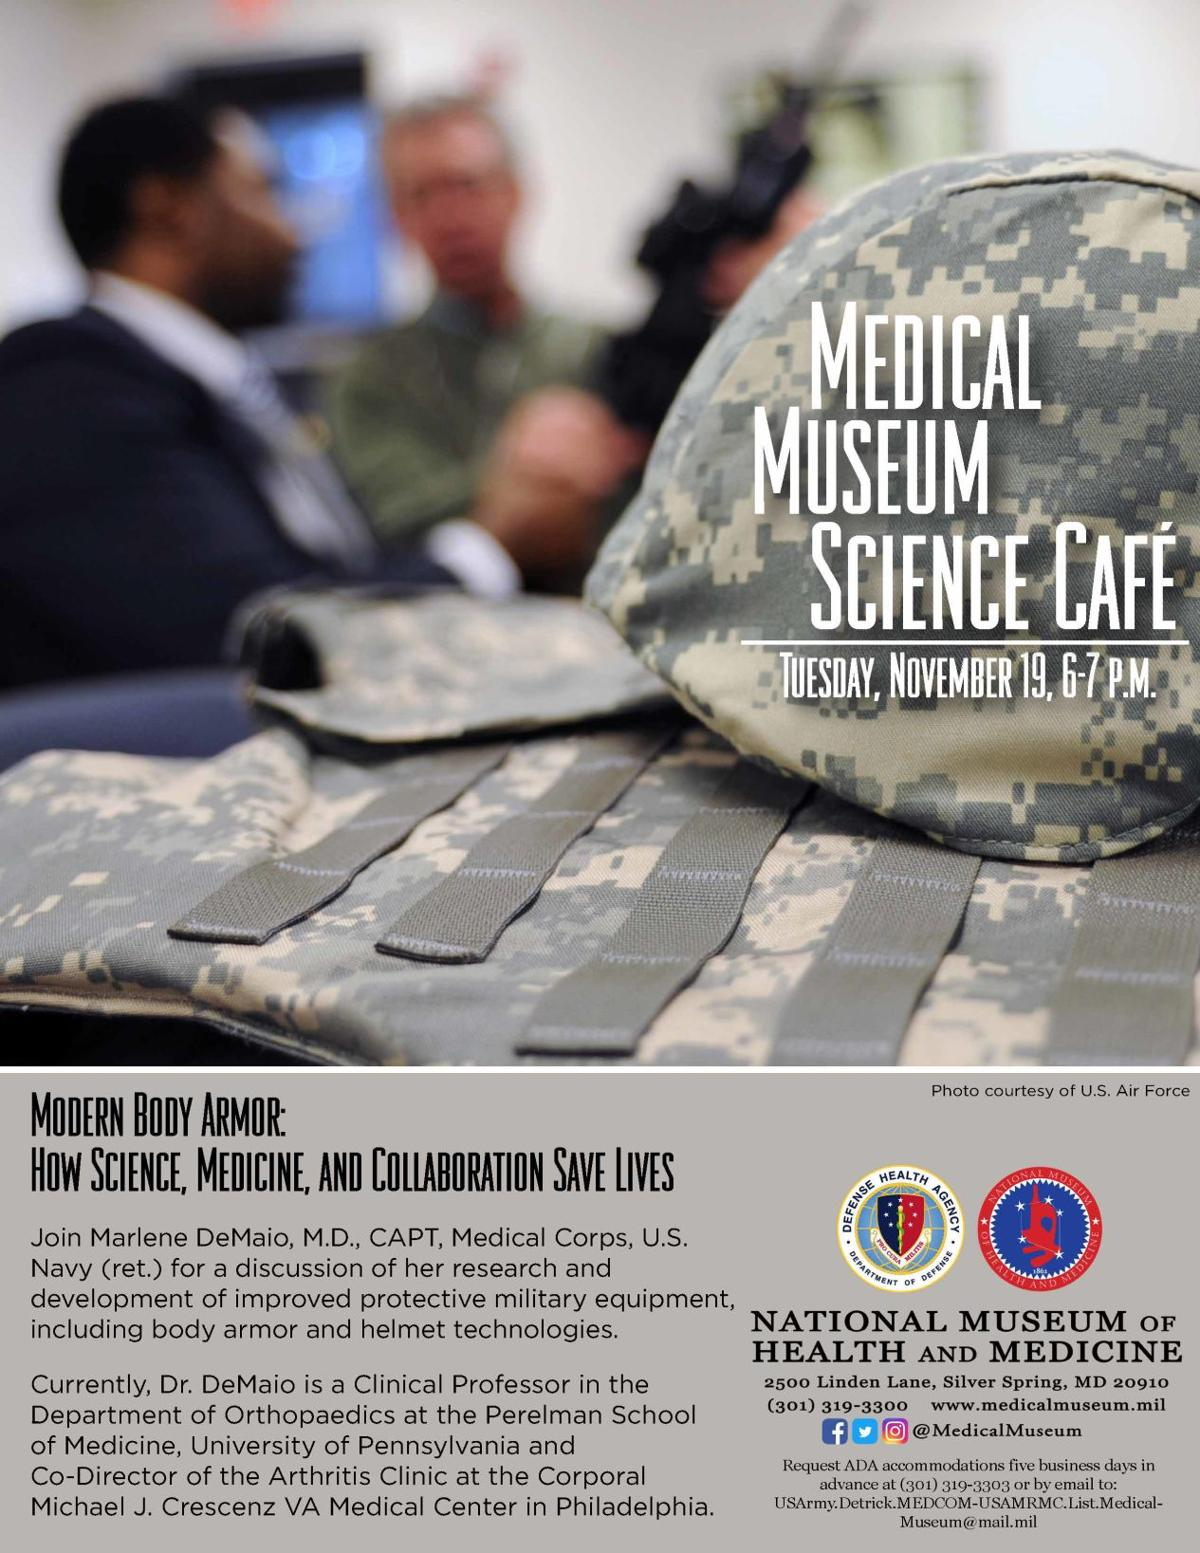 Medical Museum Science Cafe